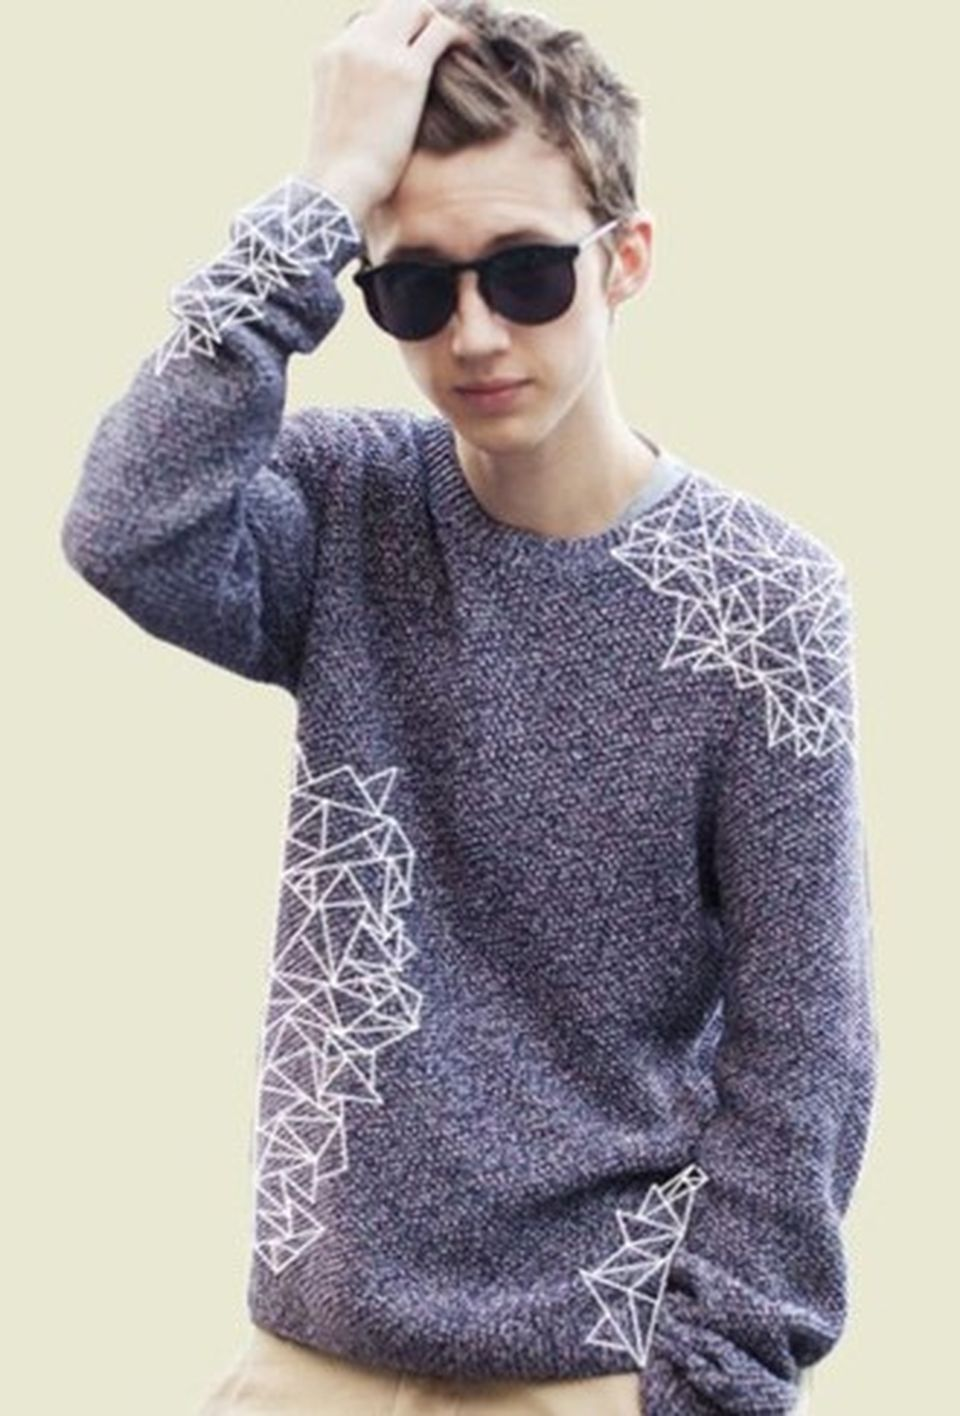 Casual indie mens fashion outfits style 4